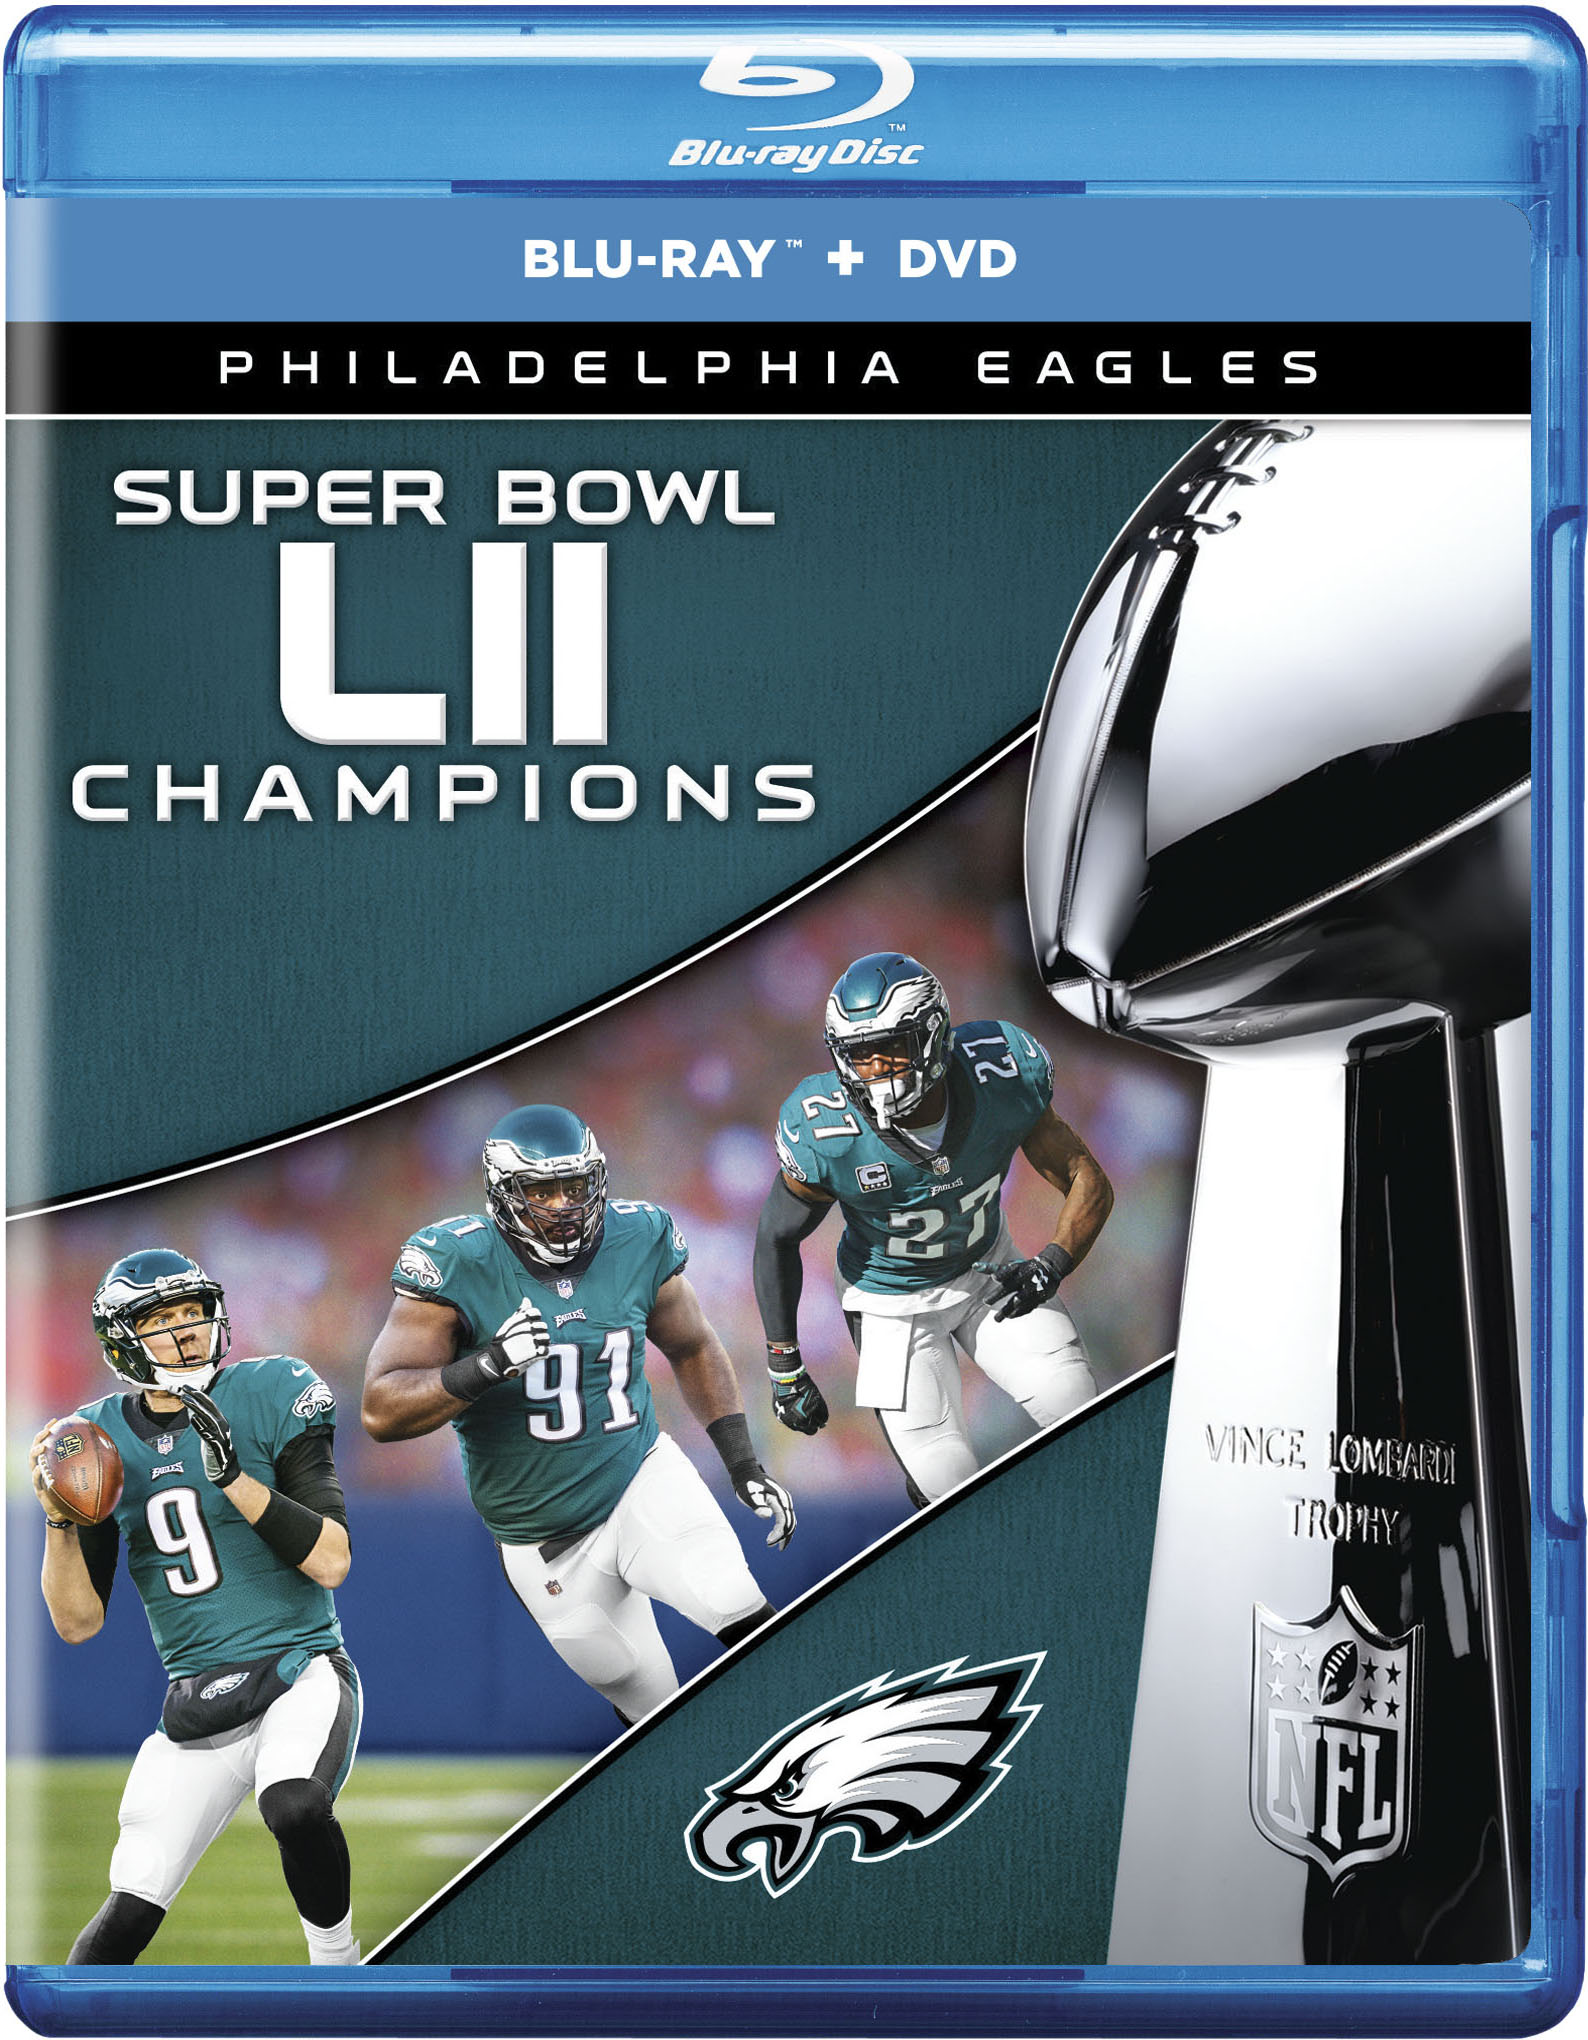 Philadelphia Eagles NFL Super Bowl 52 Champions (Blu-ray + DVD) by Gaiam Americas